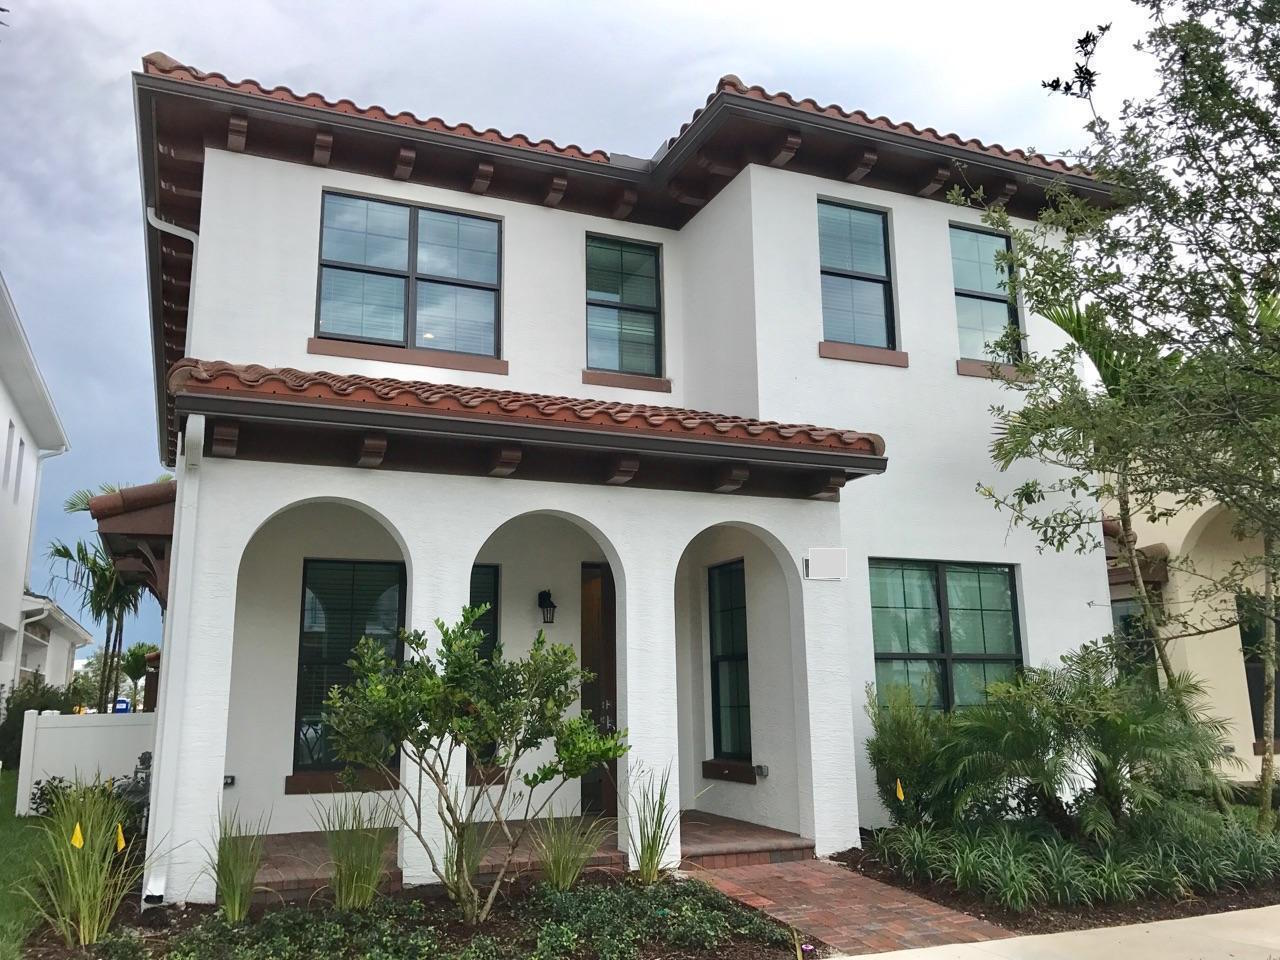 Fabulous Single house and high end stainless steel appliances. Park C Model. 1st fl has a bdrm and full bath. Master suite upstairs w 2 XL walk-in closets. Large loft & 2 guest suites, each w/ full bath. Laundry room on 2nd floor.  Rent Includes Cable Internet & Landscape maint. Easy access to 95&Florida Turnpike. Few miles away from Jupiter&Juno Beach. Walking dist. to Benjamin private school. Great public school zone. Spectacular WIFI clubhouse with large fitness center,resort style pool.